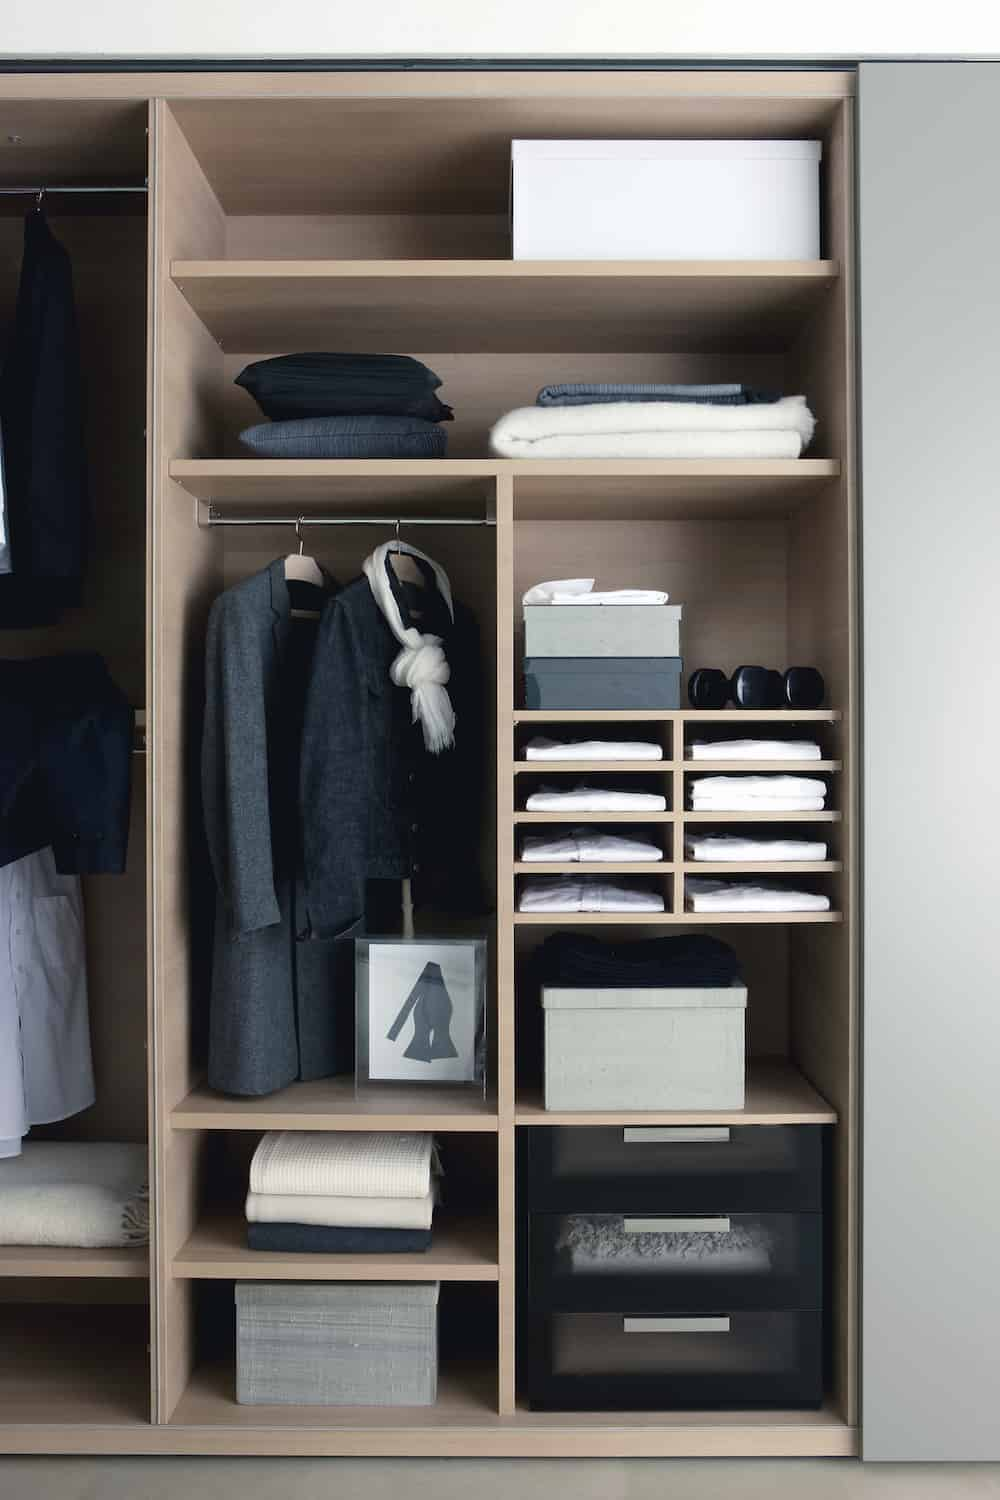 8 Quick and Easy Closet Upgrades - Give Everything a Place